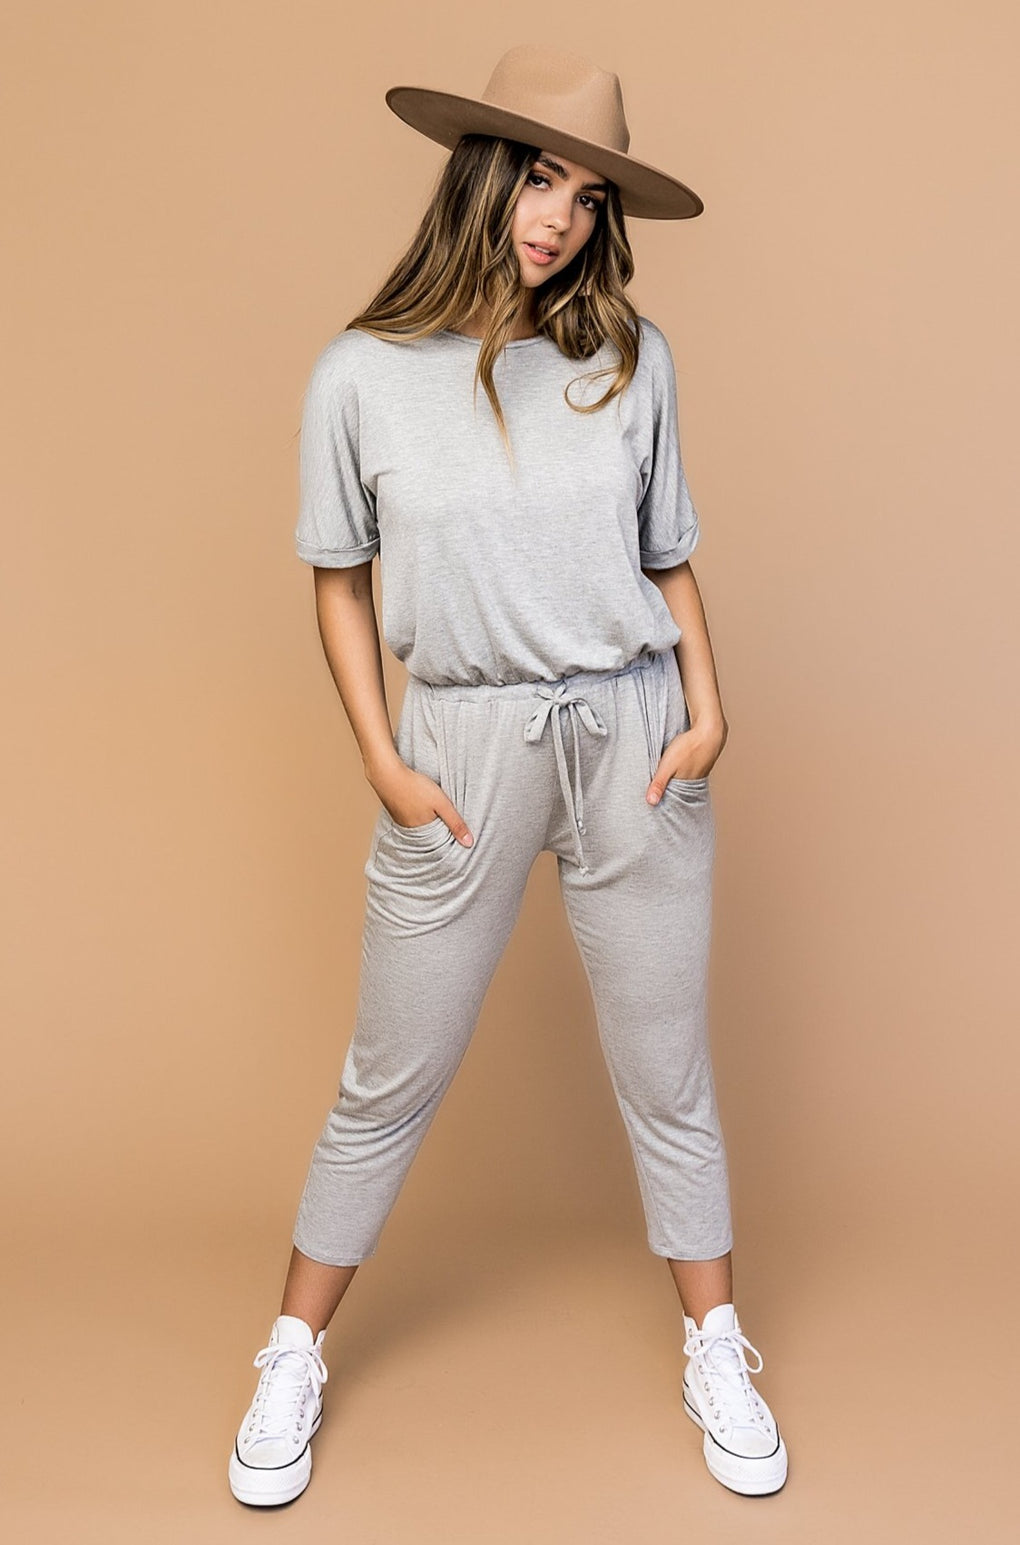 Just Breathe Lounge Jumpsuit